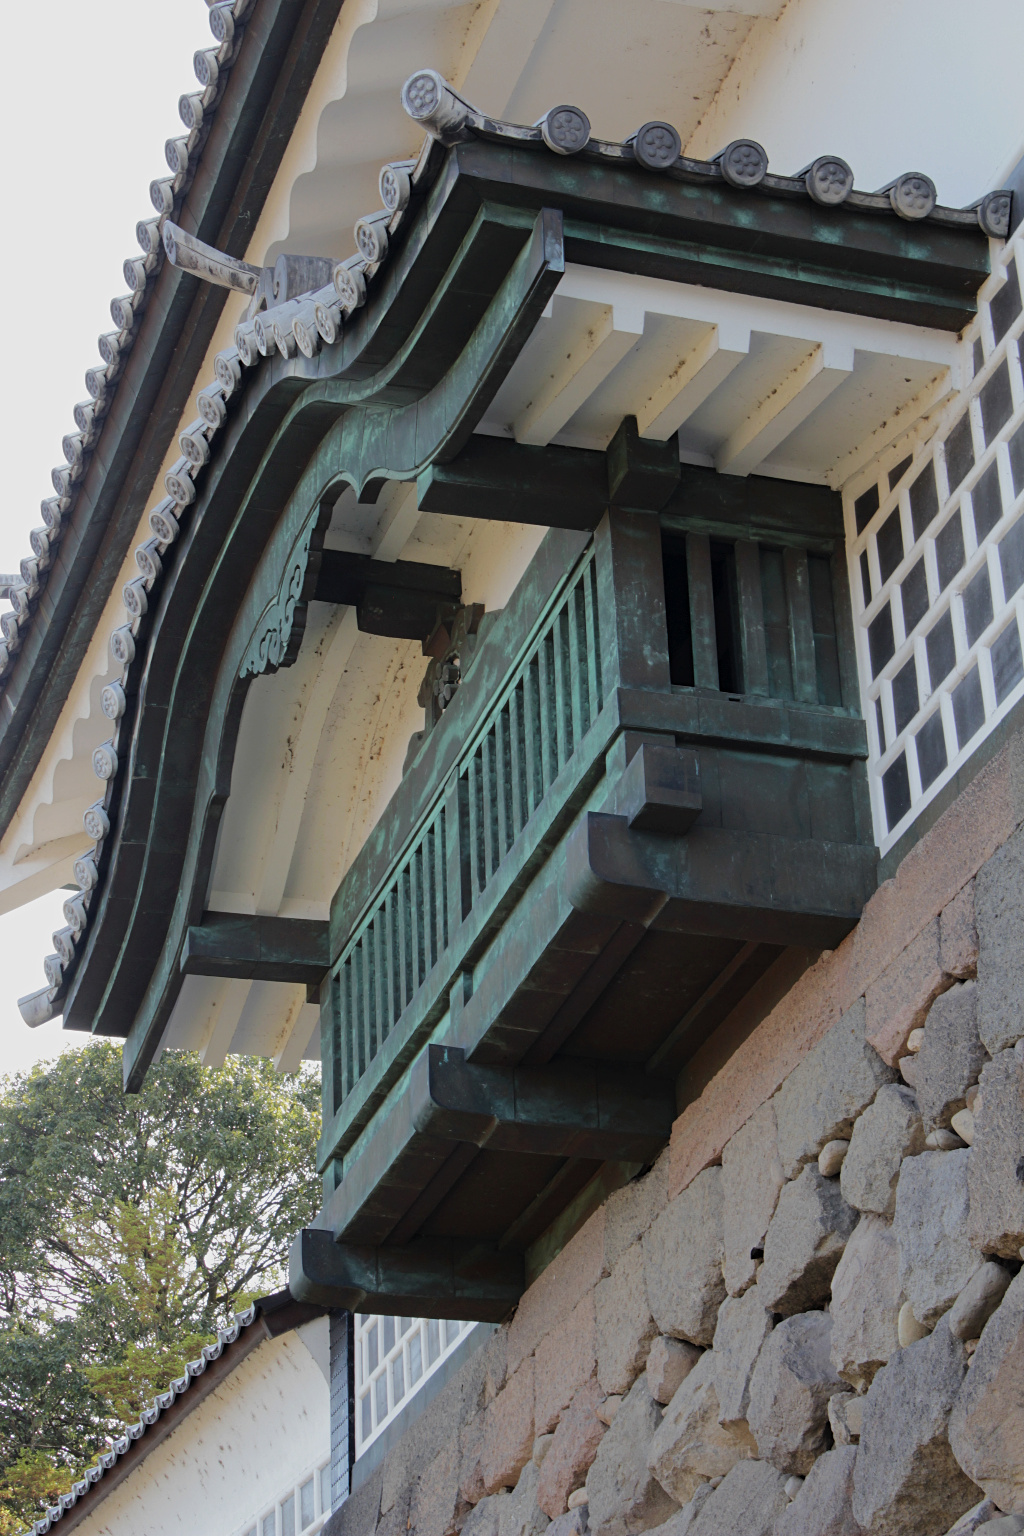 """One of the lookouts and """"murder holes"""" in Kanazawa Castle overlooking the moat."""